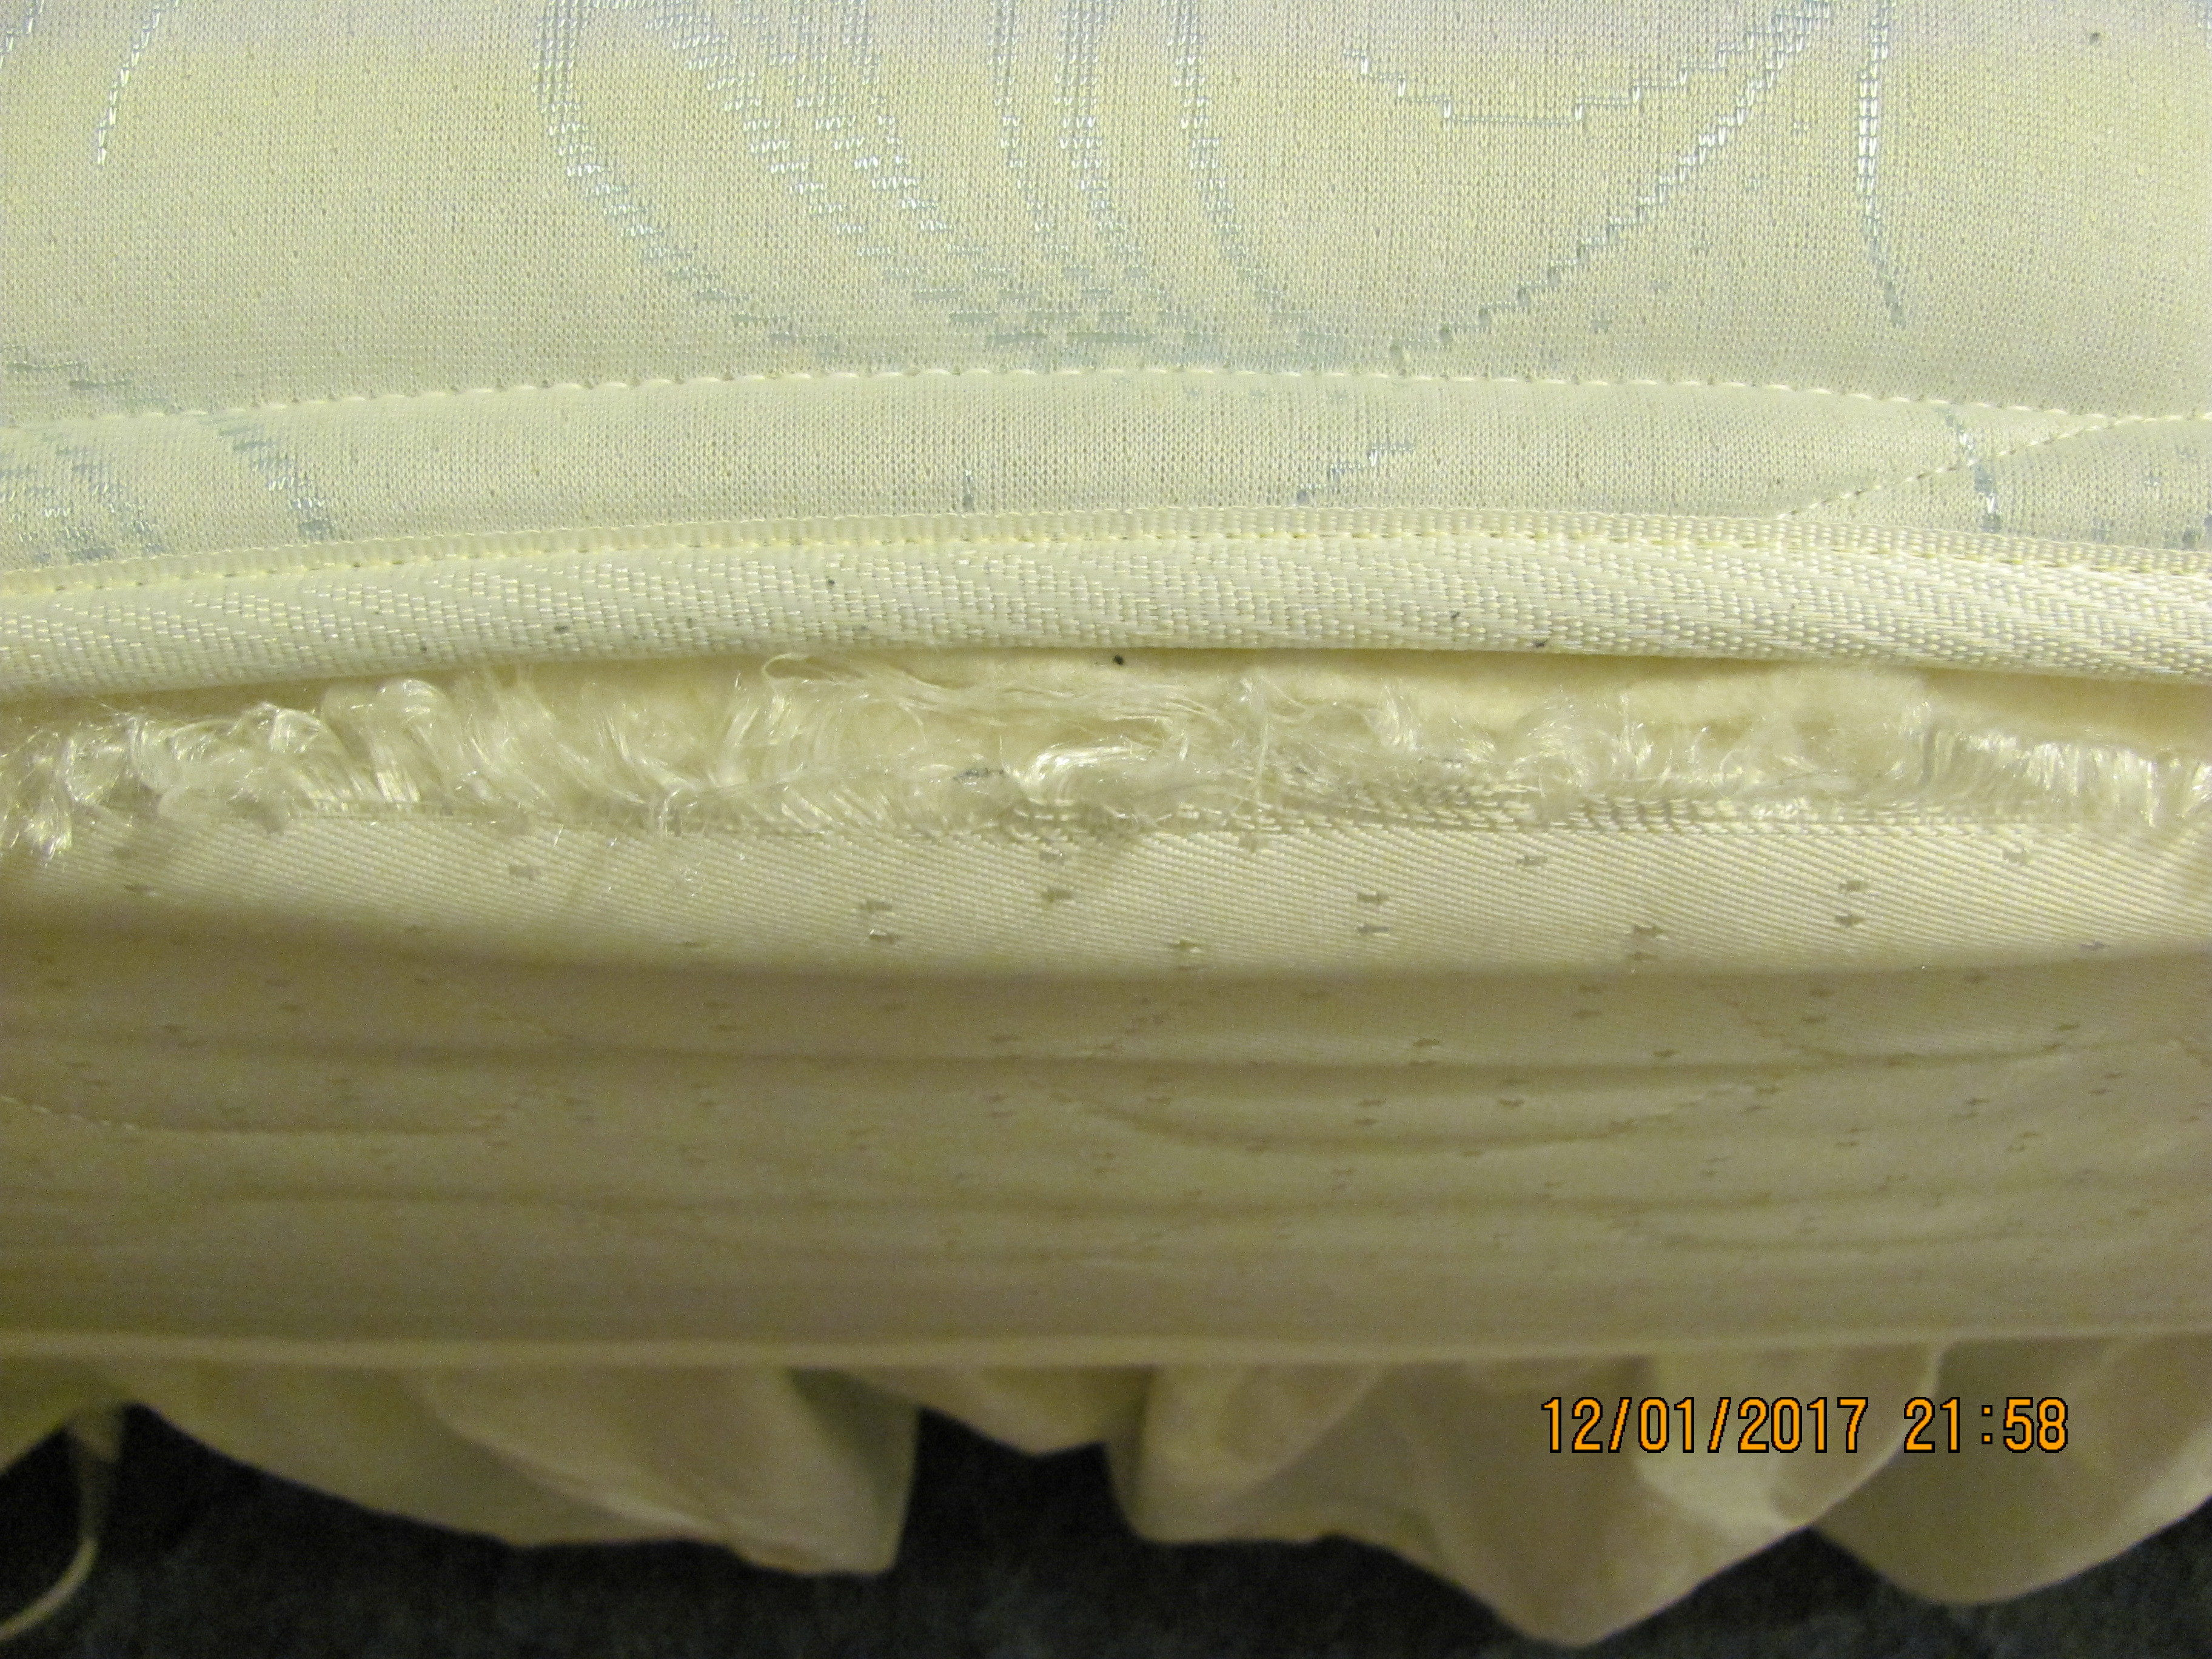 We purchased a Stearns & Foster mattress in 2013 from Sunrise Surplus,  which of course is now out of business. We decided it was time to buy the  best, ...